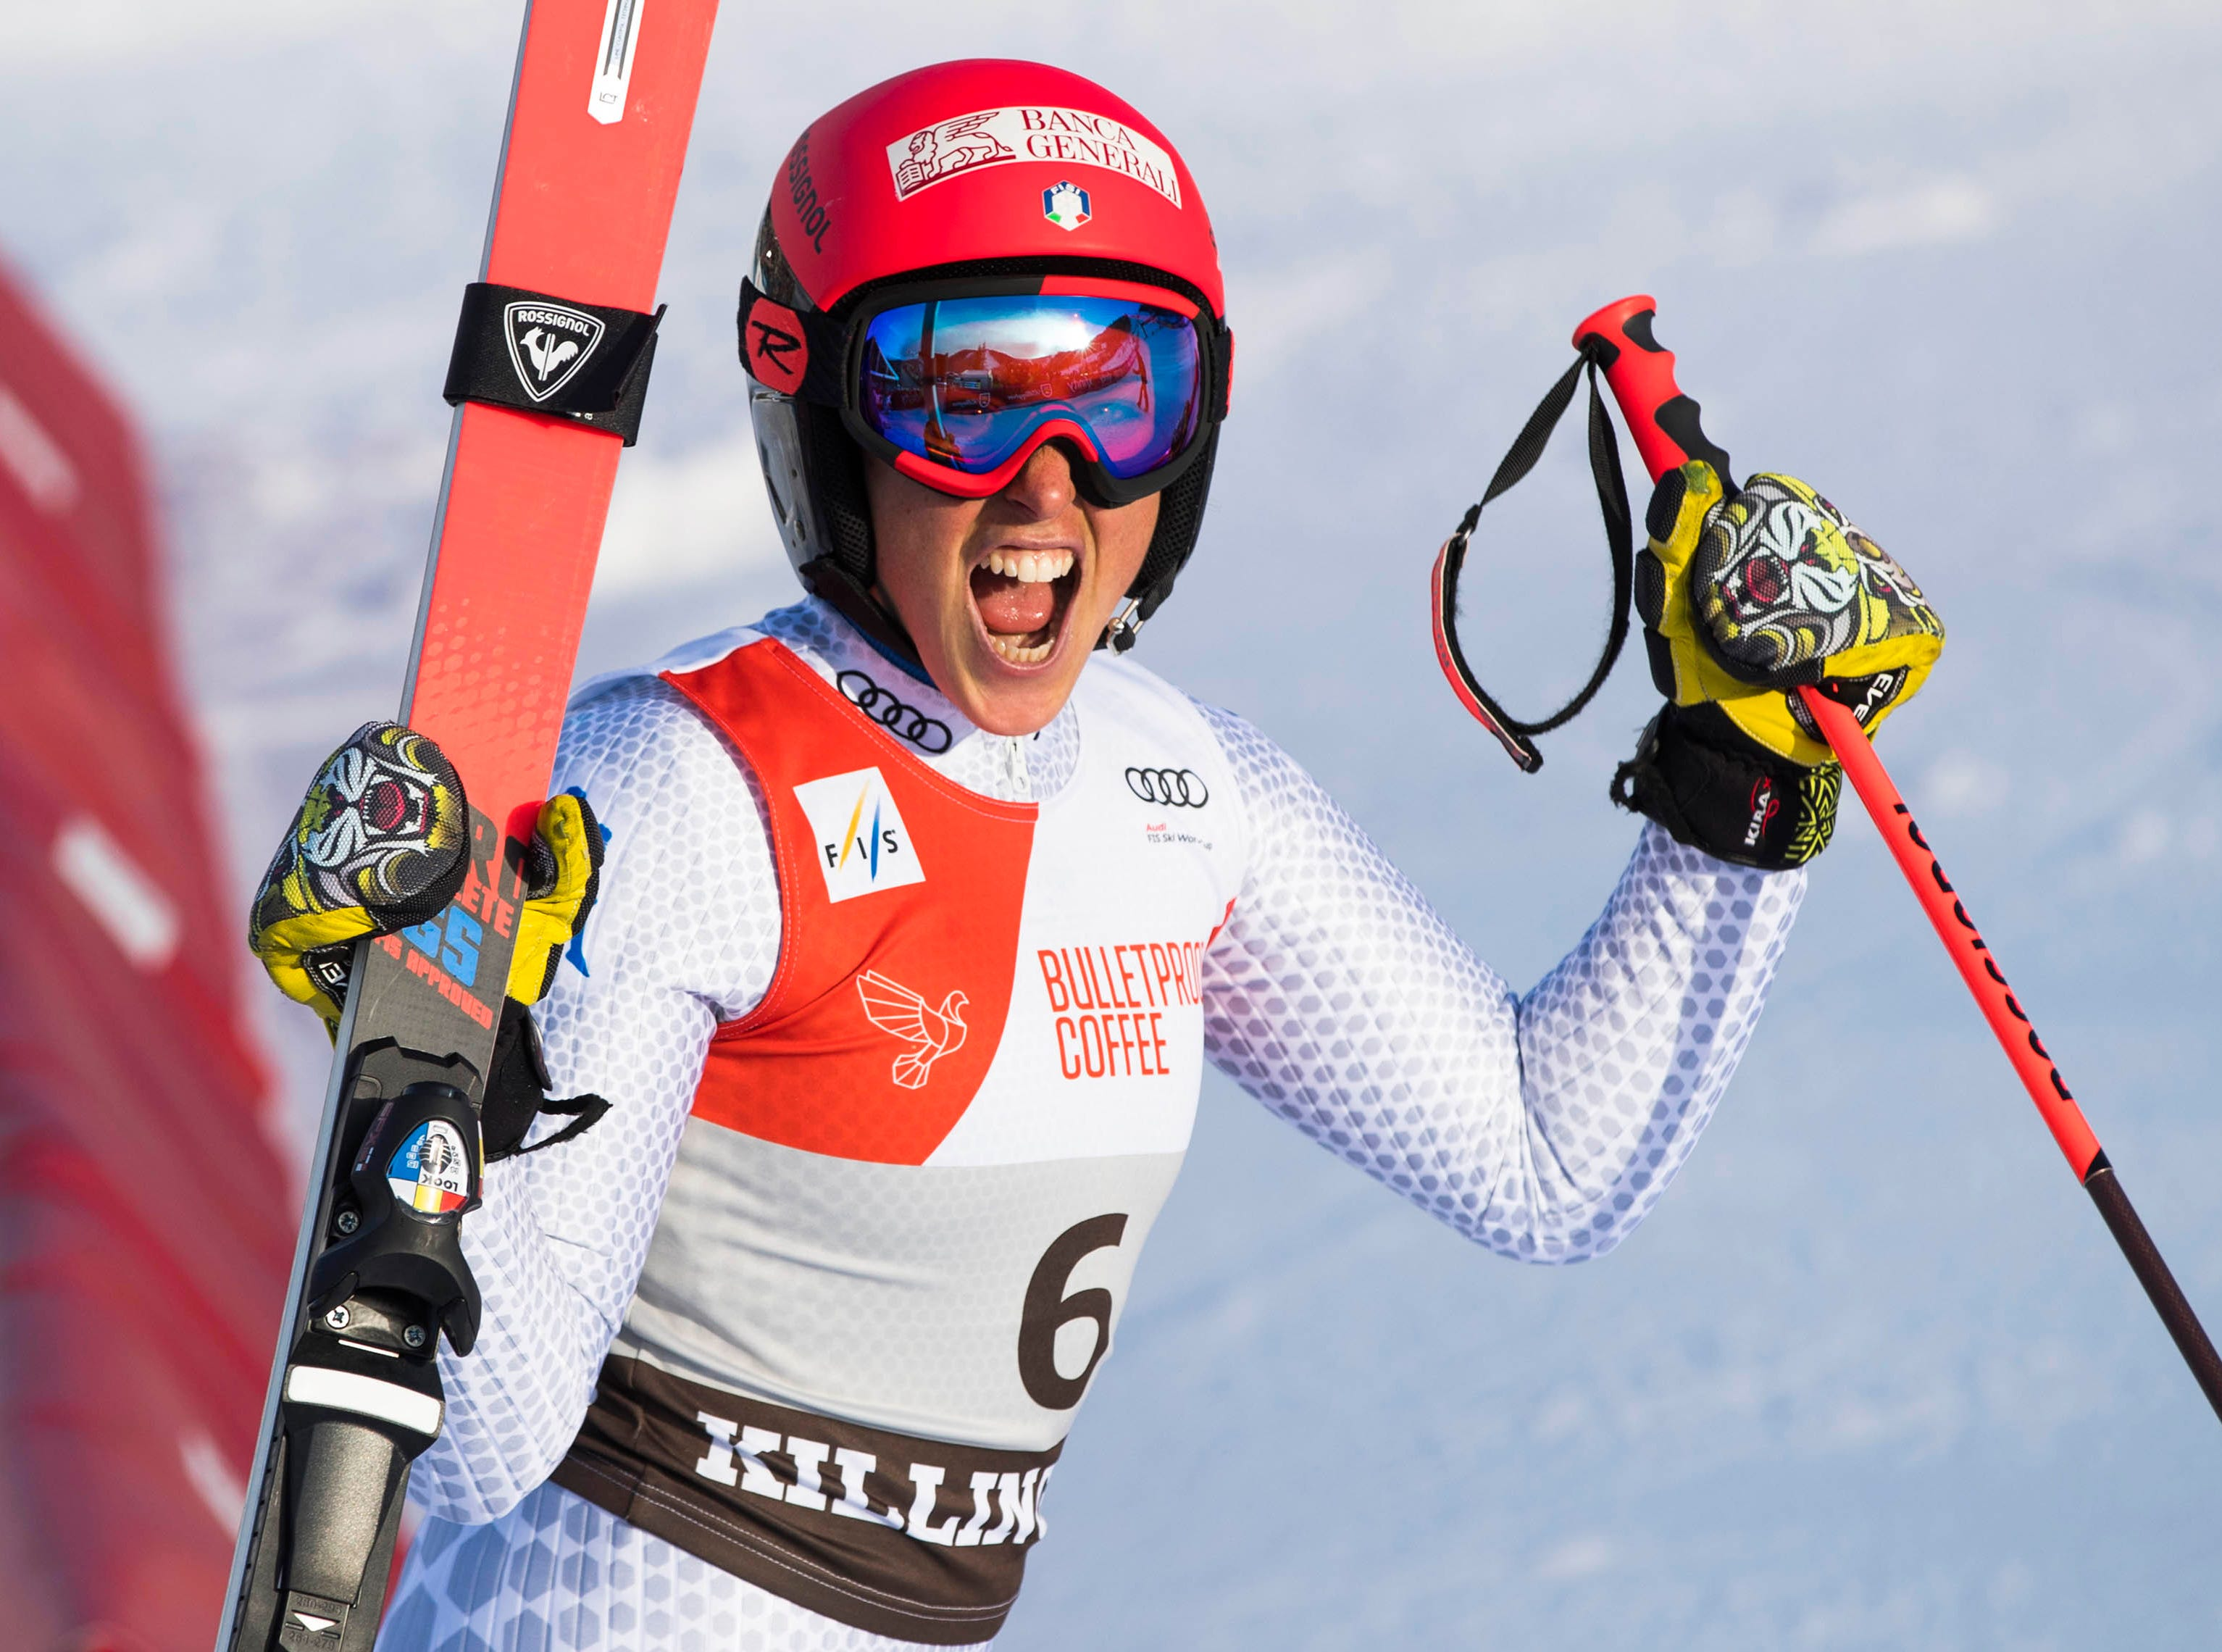 Federica Brignone of Italy wins the women's giant slalom in the 2018 Audi FIS Alpine Skiing World Cup races at Killington Resort.